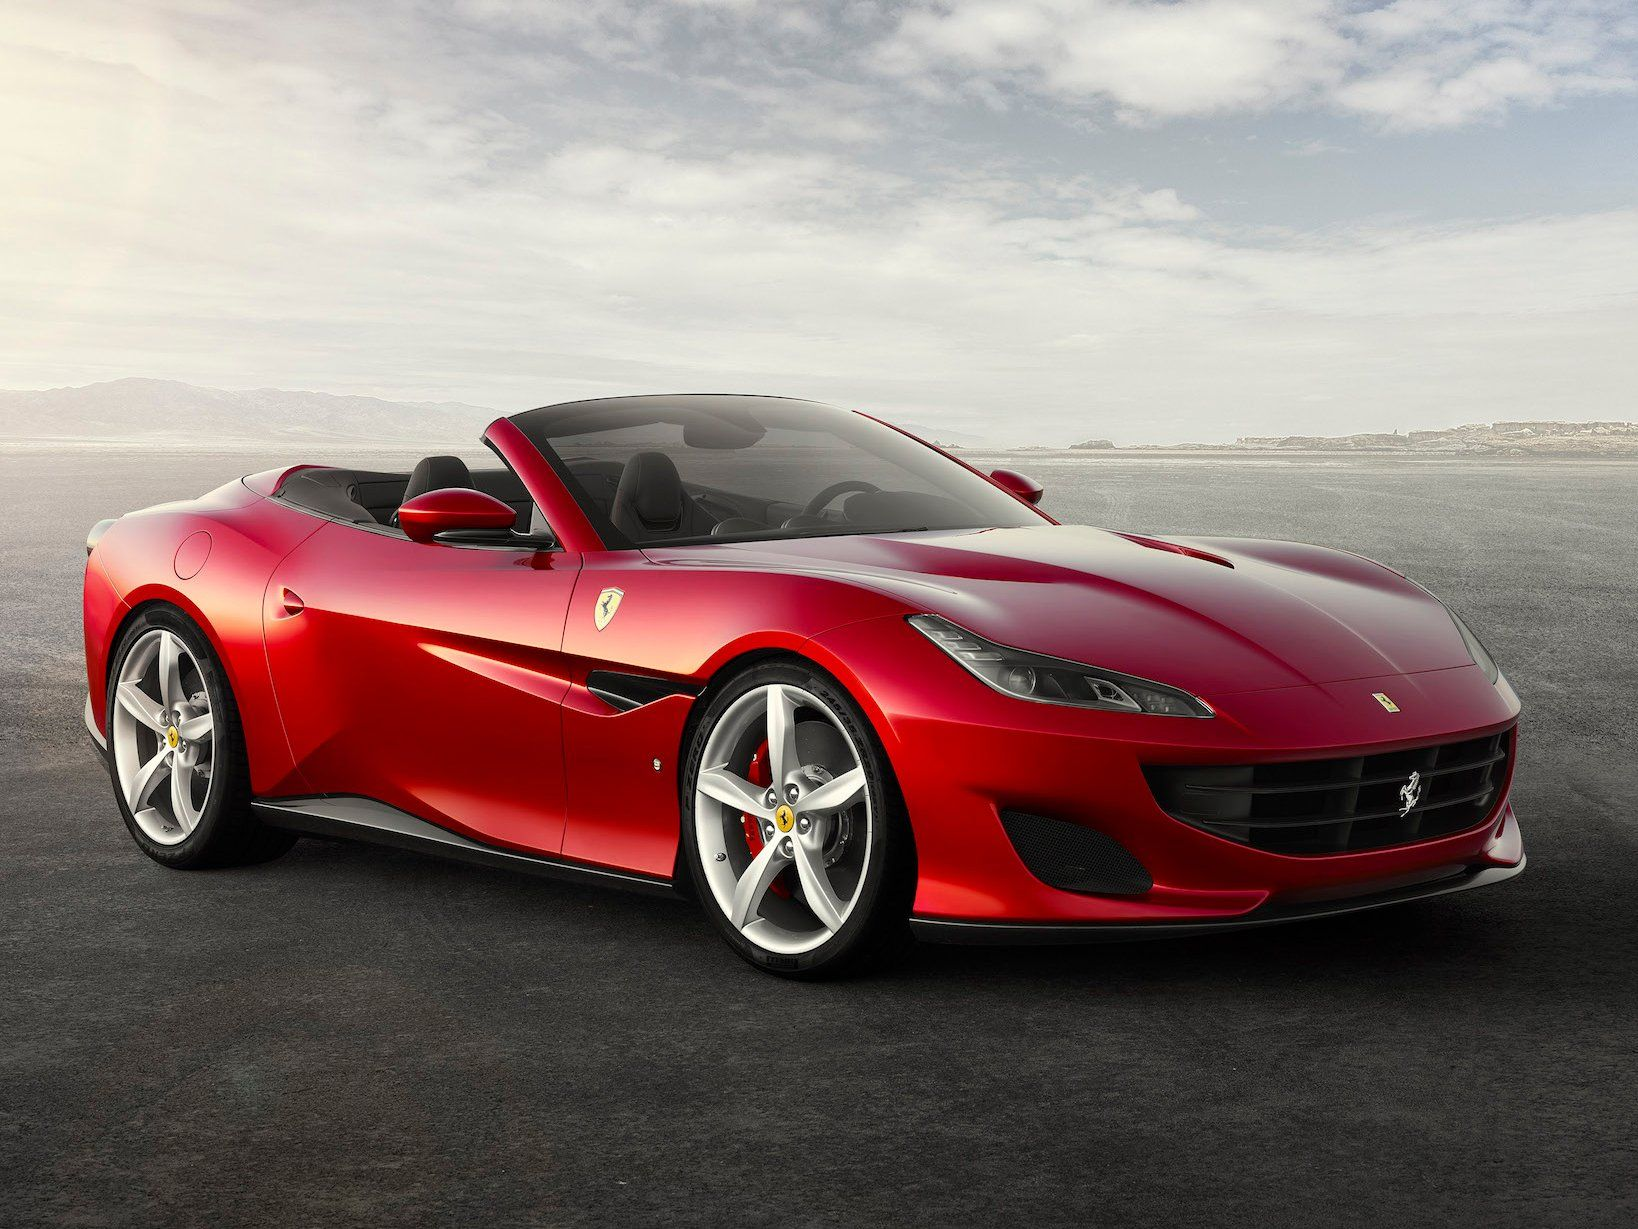 auto in sale for dollars img com less orlando than your ferrari area used italia priced cars